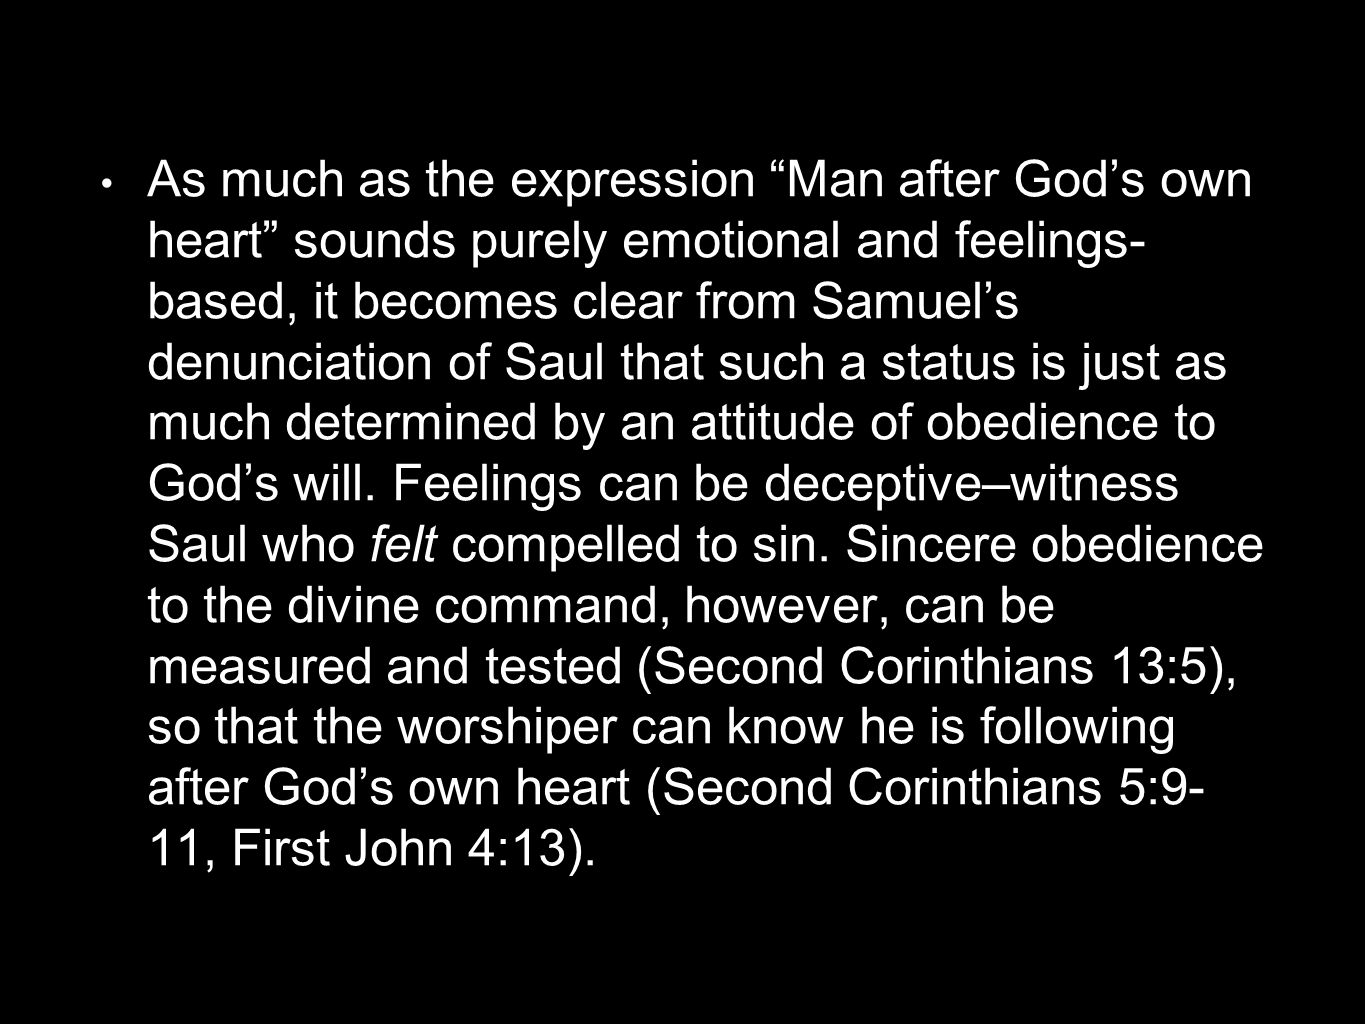 As much as the expression Man after God's own heart sounds purely emotional and feelings- based, it becomes clear from Samuel's denunciation of Saul that such a status is just as much determined by an attitude of obedience to God's will.